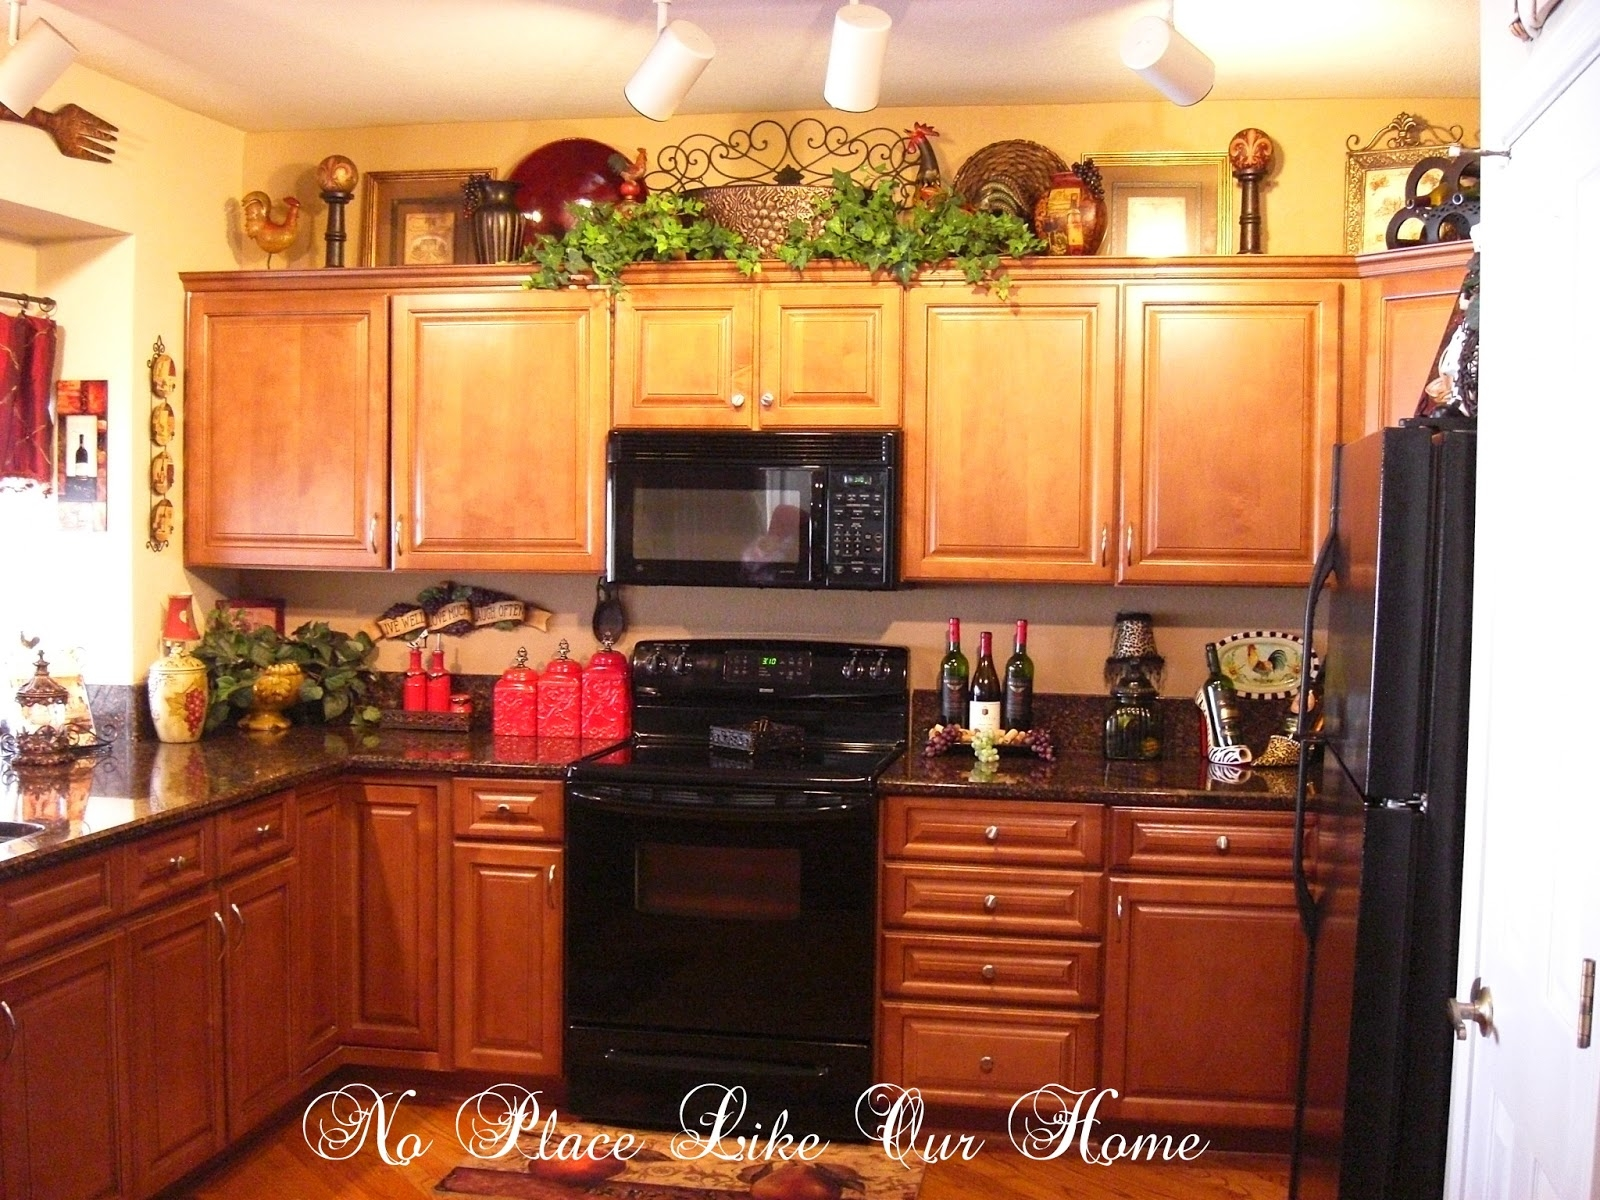 Home Decor For Top Of Kitchen Cabinets